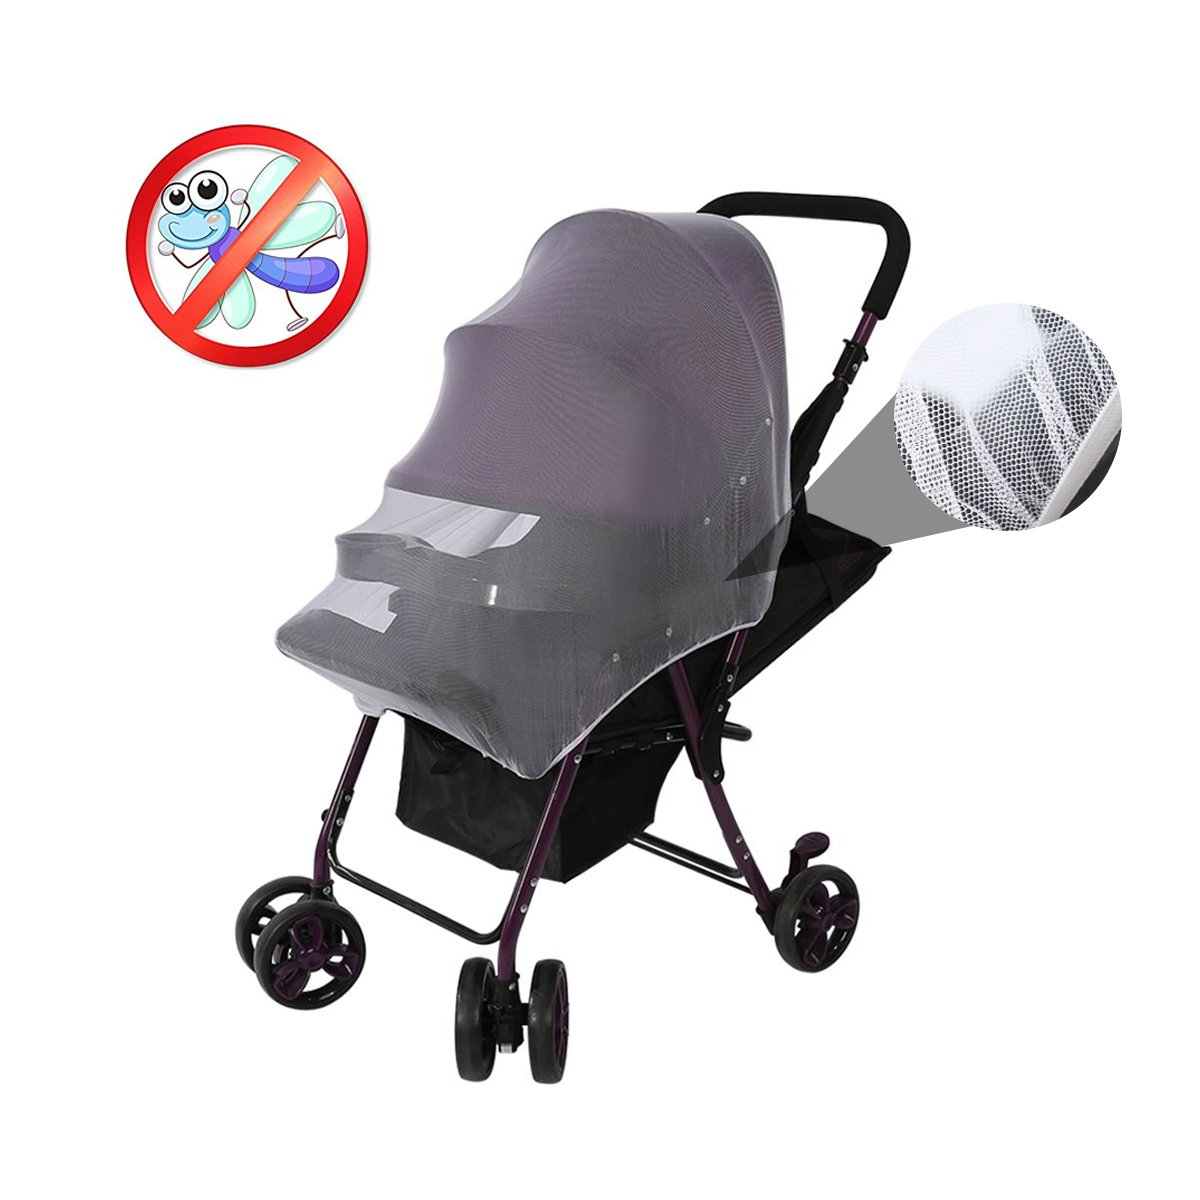 Yosoo Multifunctional Universal 150*120cm Baby Cart Full Cover Mosquito Net Travel System Insect Netting Mosquito Insect Bee Bug Net Fits Most Strollers Bassinets, Cradles and Car Seats Safe Mesh Buggy Elastic Design White (Pack of 1) Yosoo-33-1